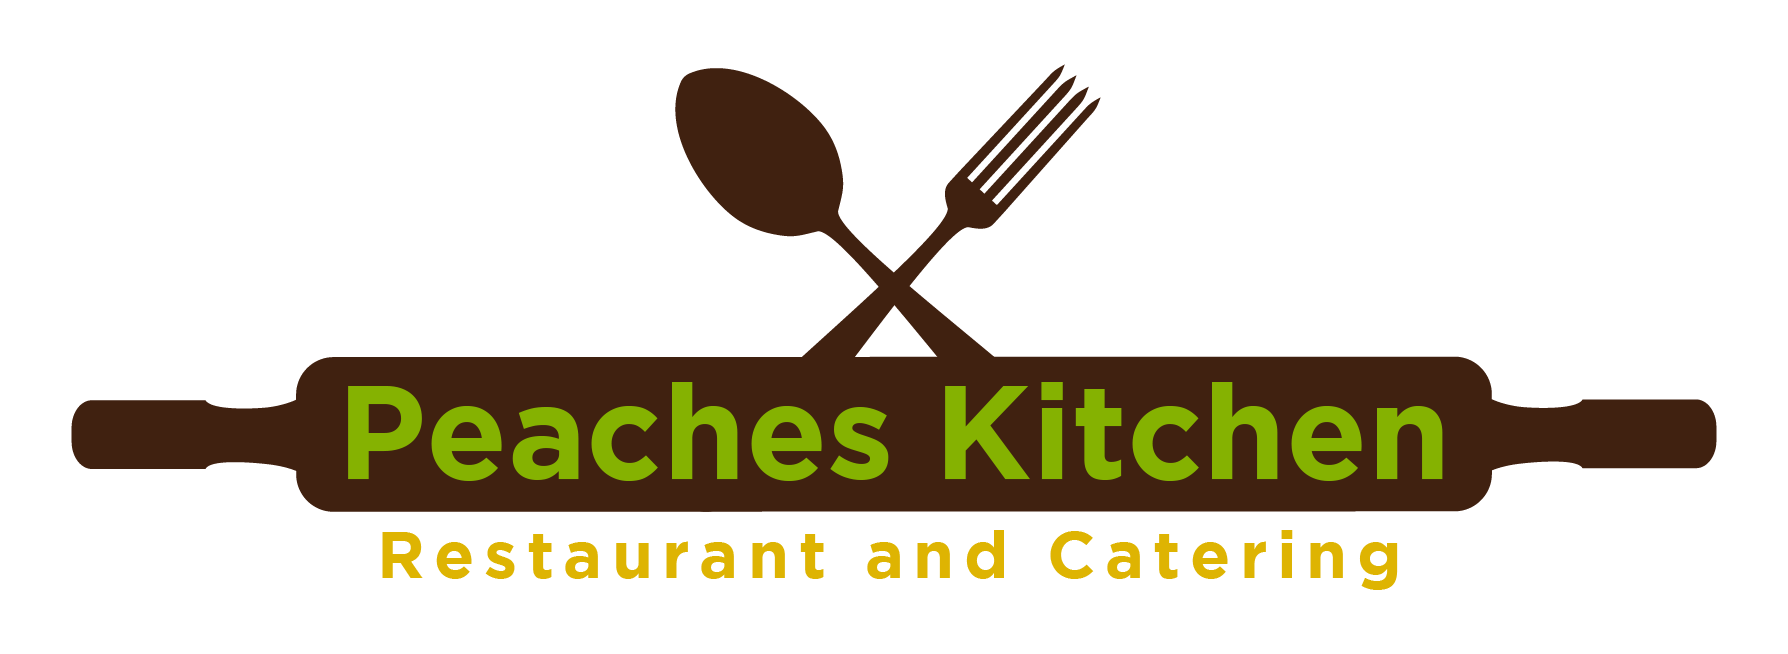 Peaches Kitchen Restaurant and Catering